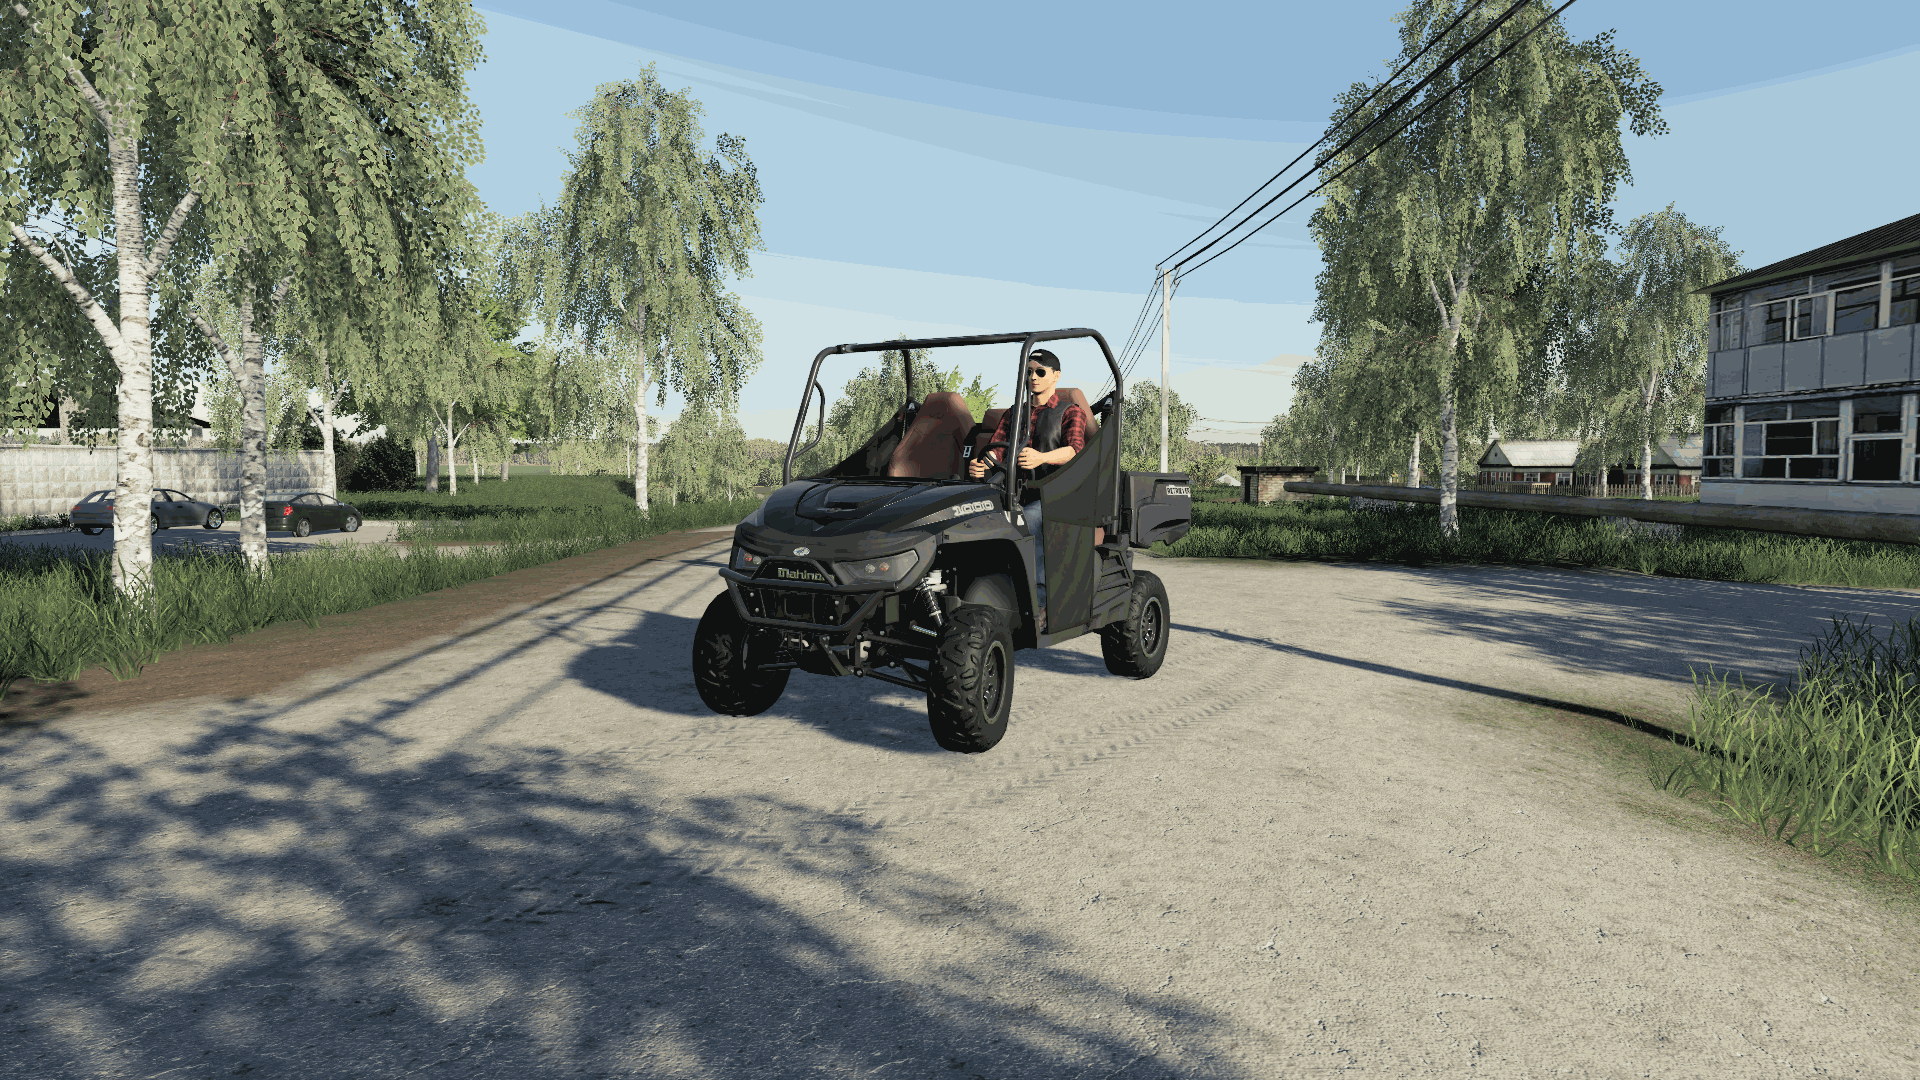 FS19 Mahindra Retriever 1000 Limited Edition